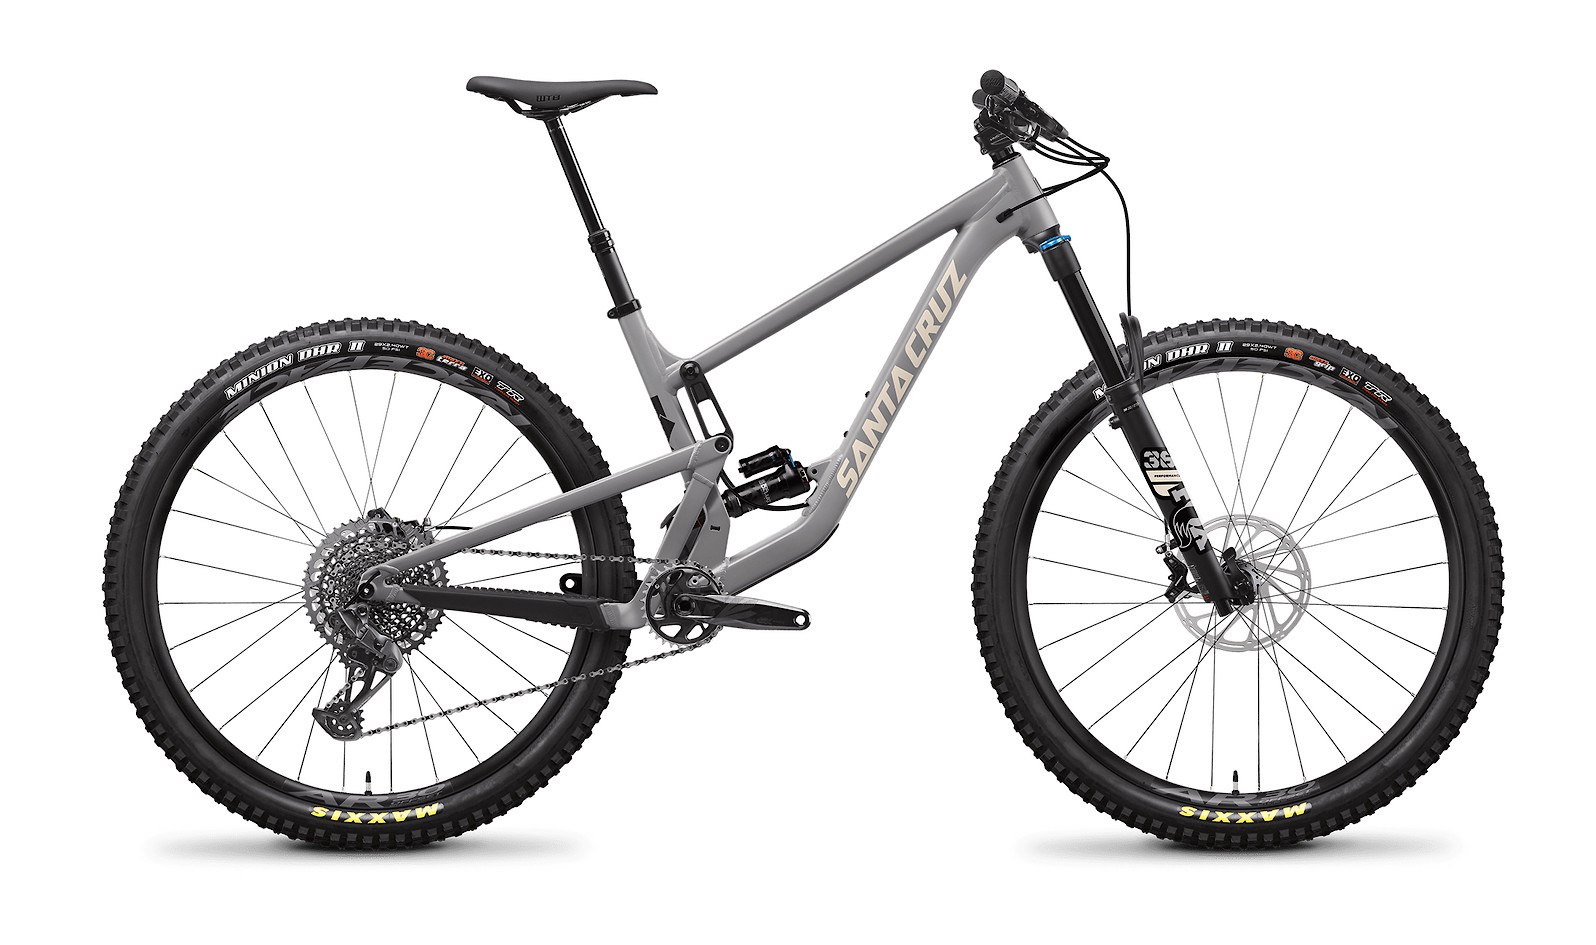 2021 Santa Cruz Hightower Aluminum - Smoke Grey and Ivory